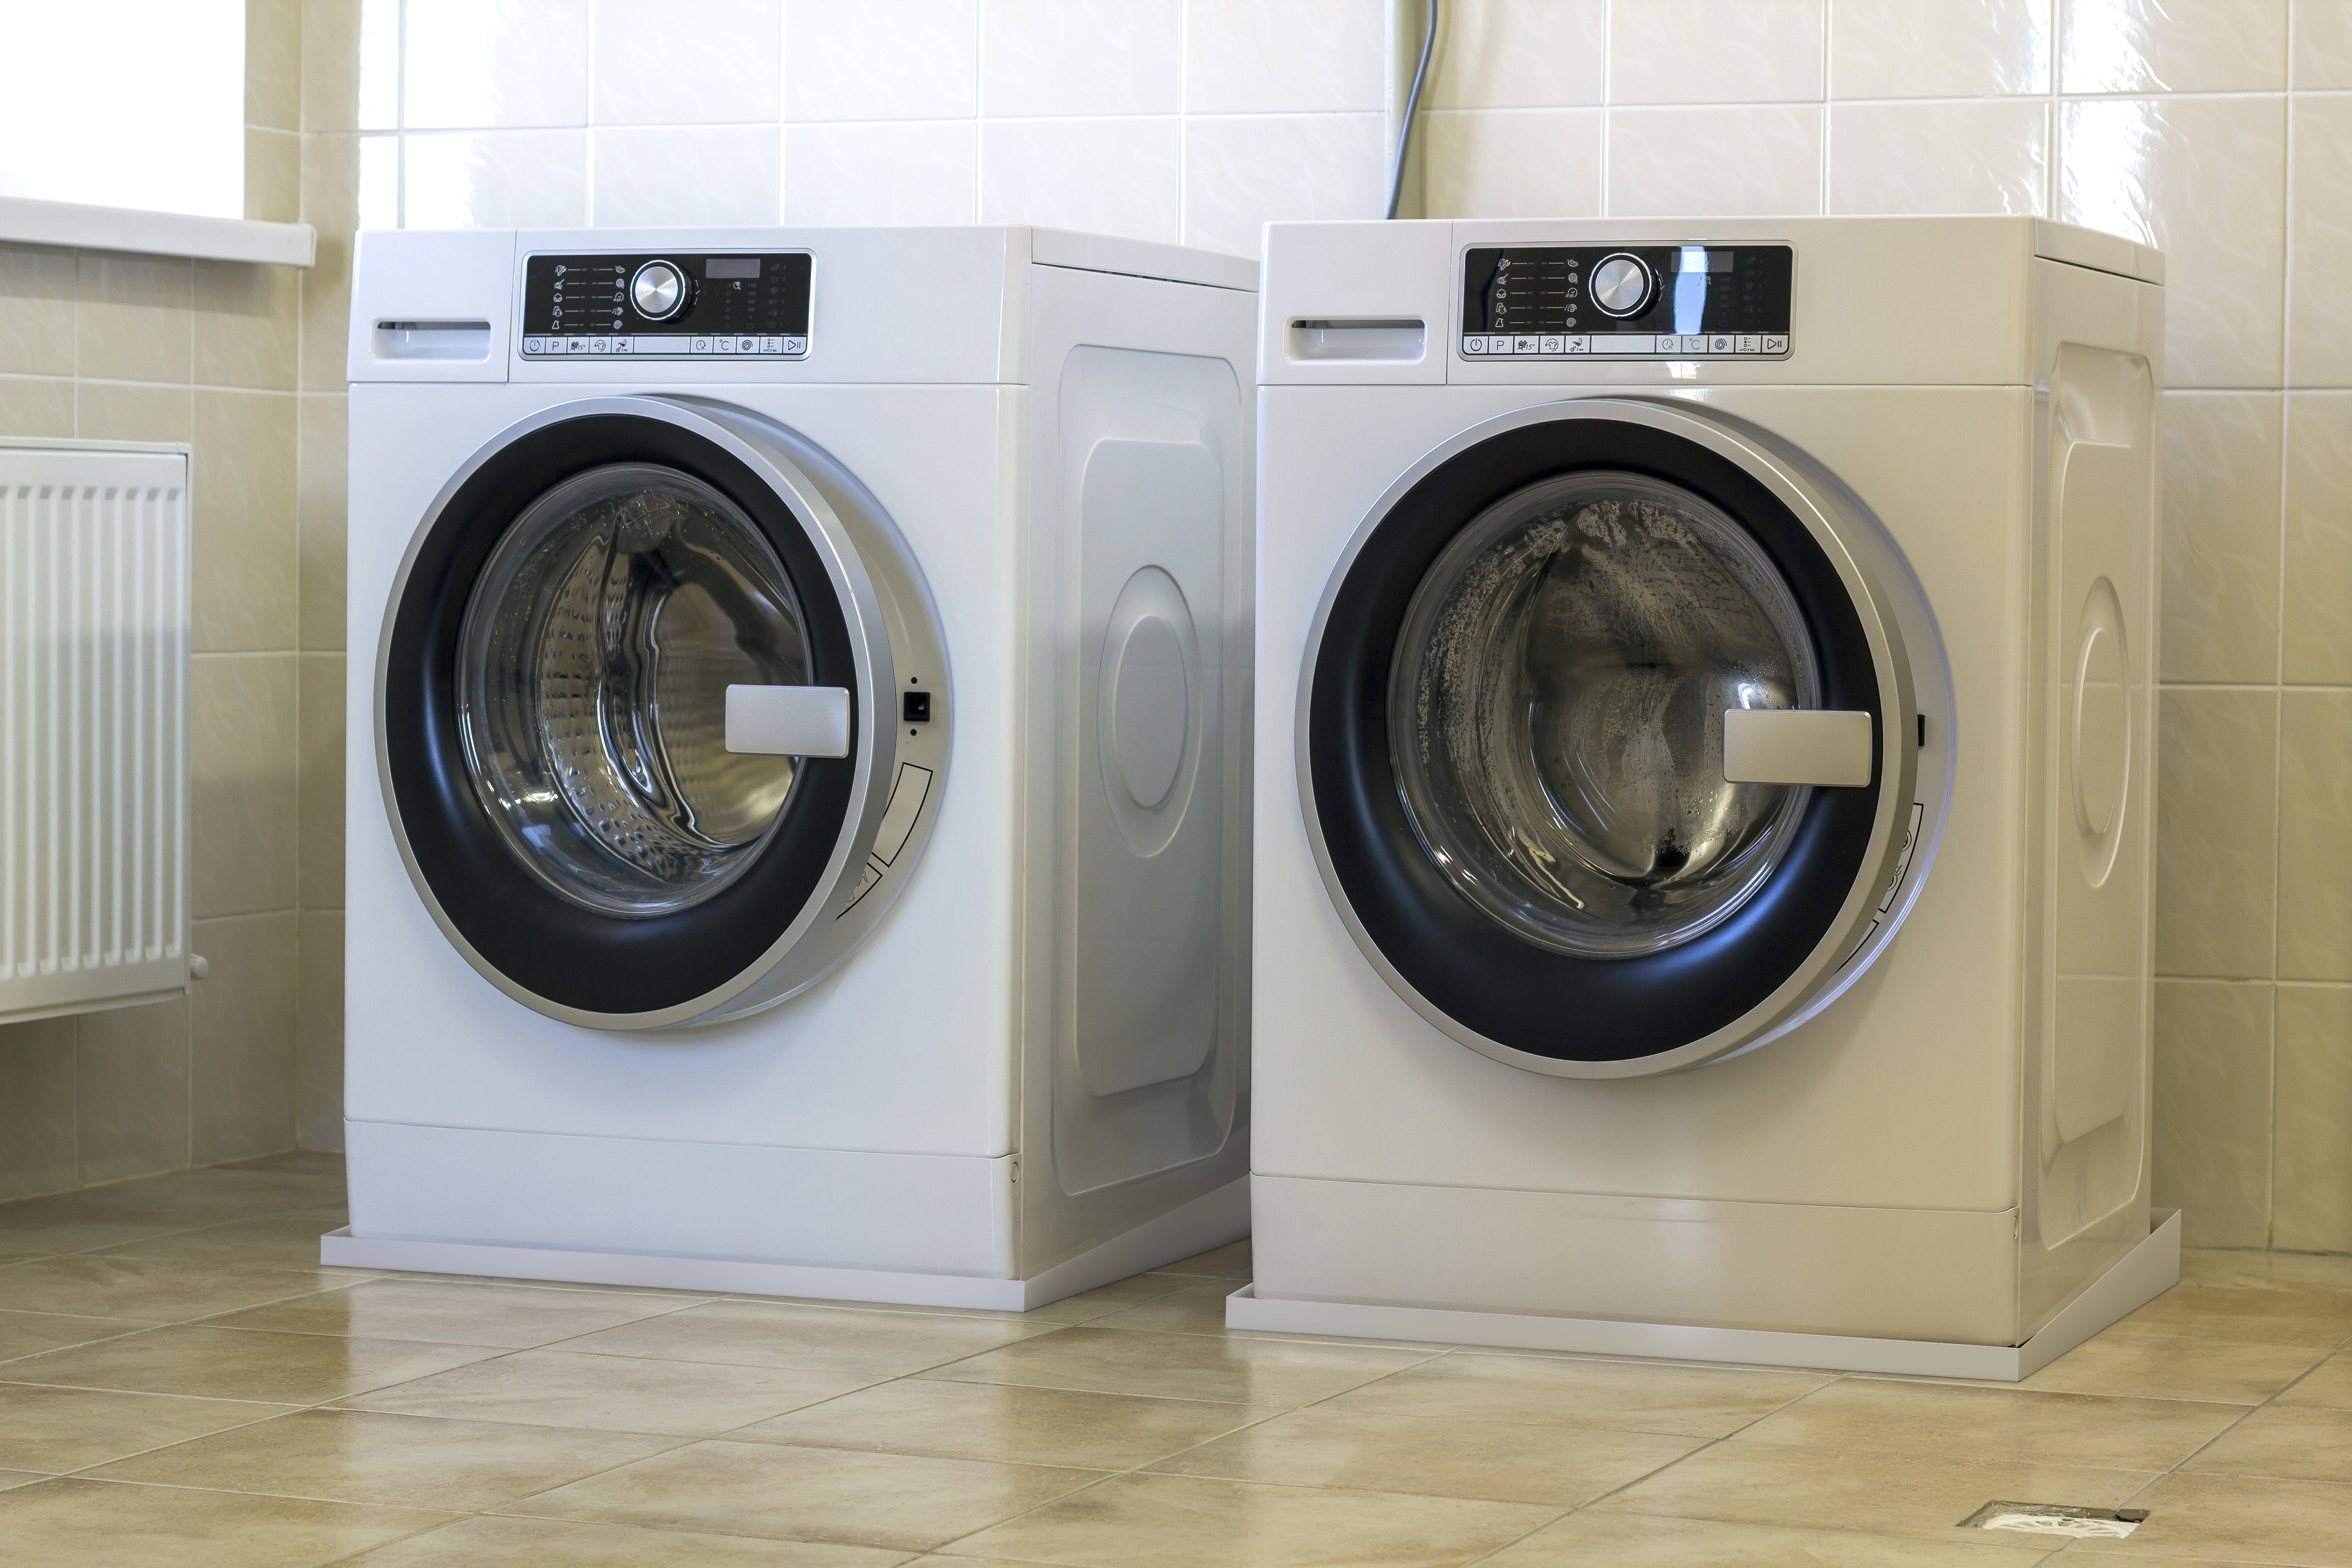 Washing Machines with Drain Pans